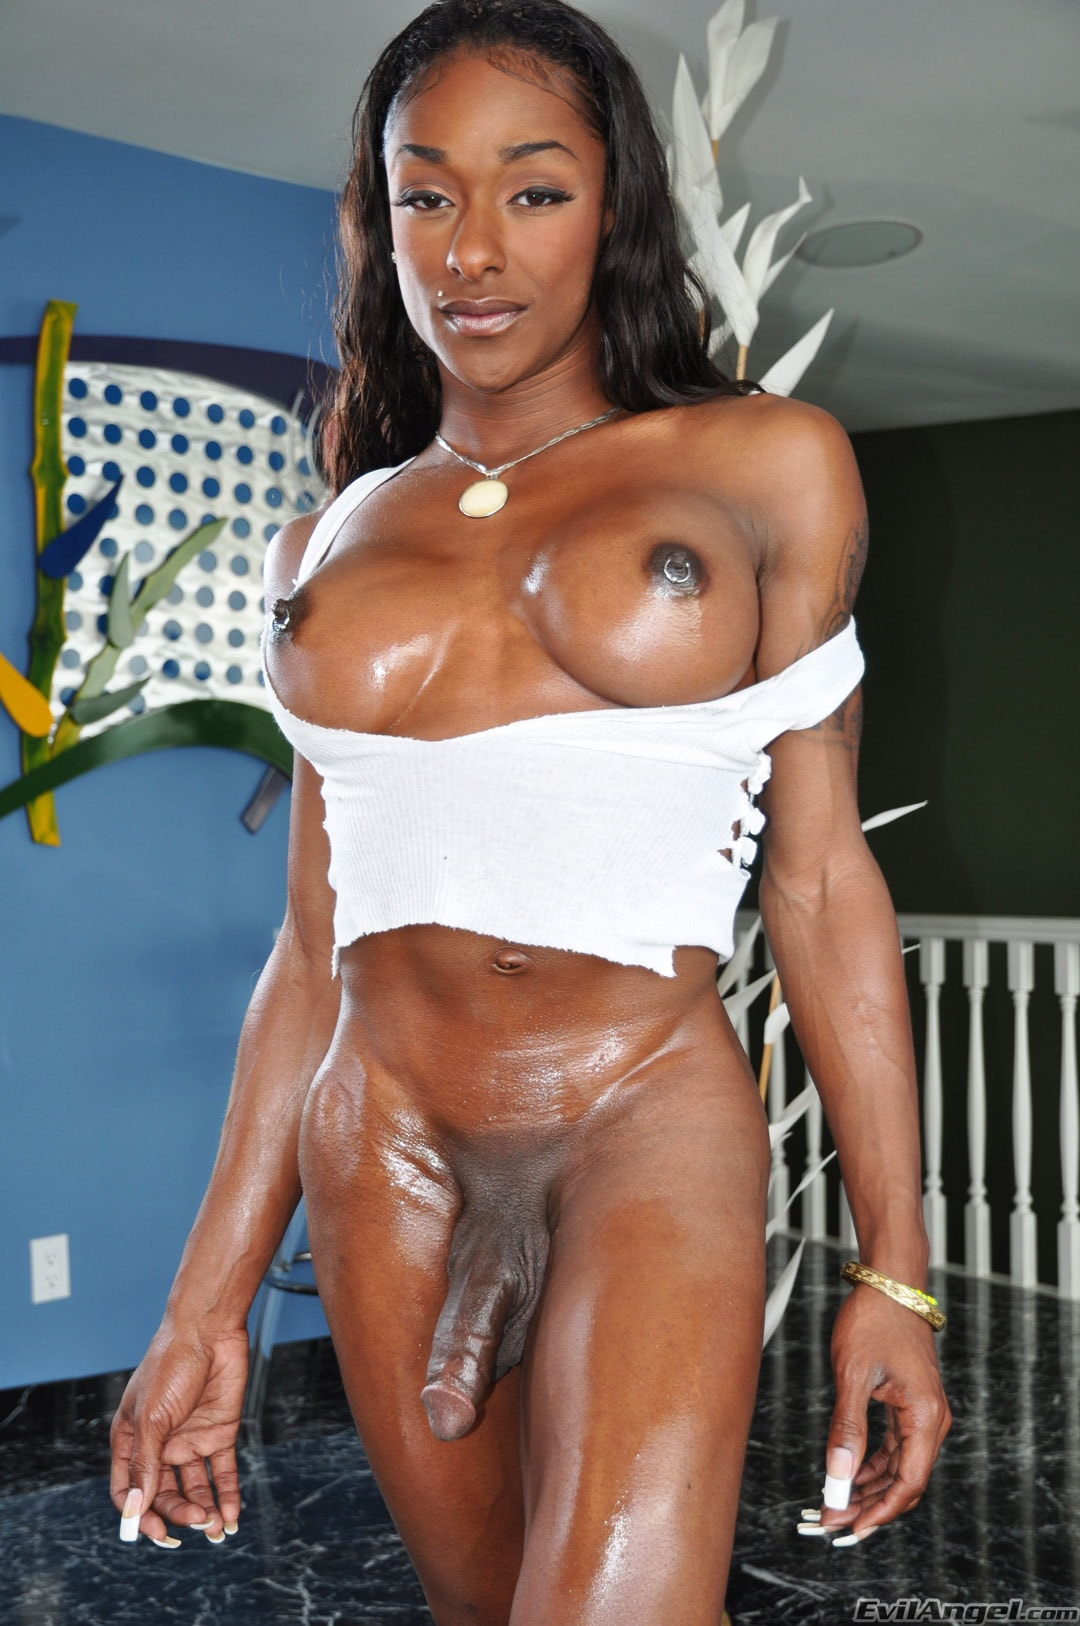 I Love Black Shemales 'Black Shemale Idol - The Auditions' starring Natalia Coxxx (Photo 27)